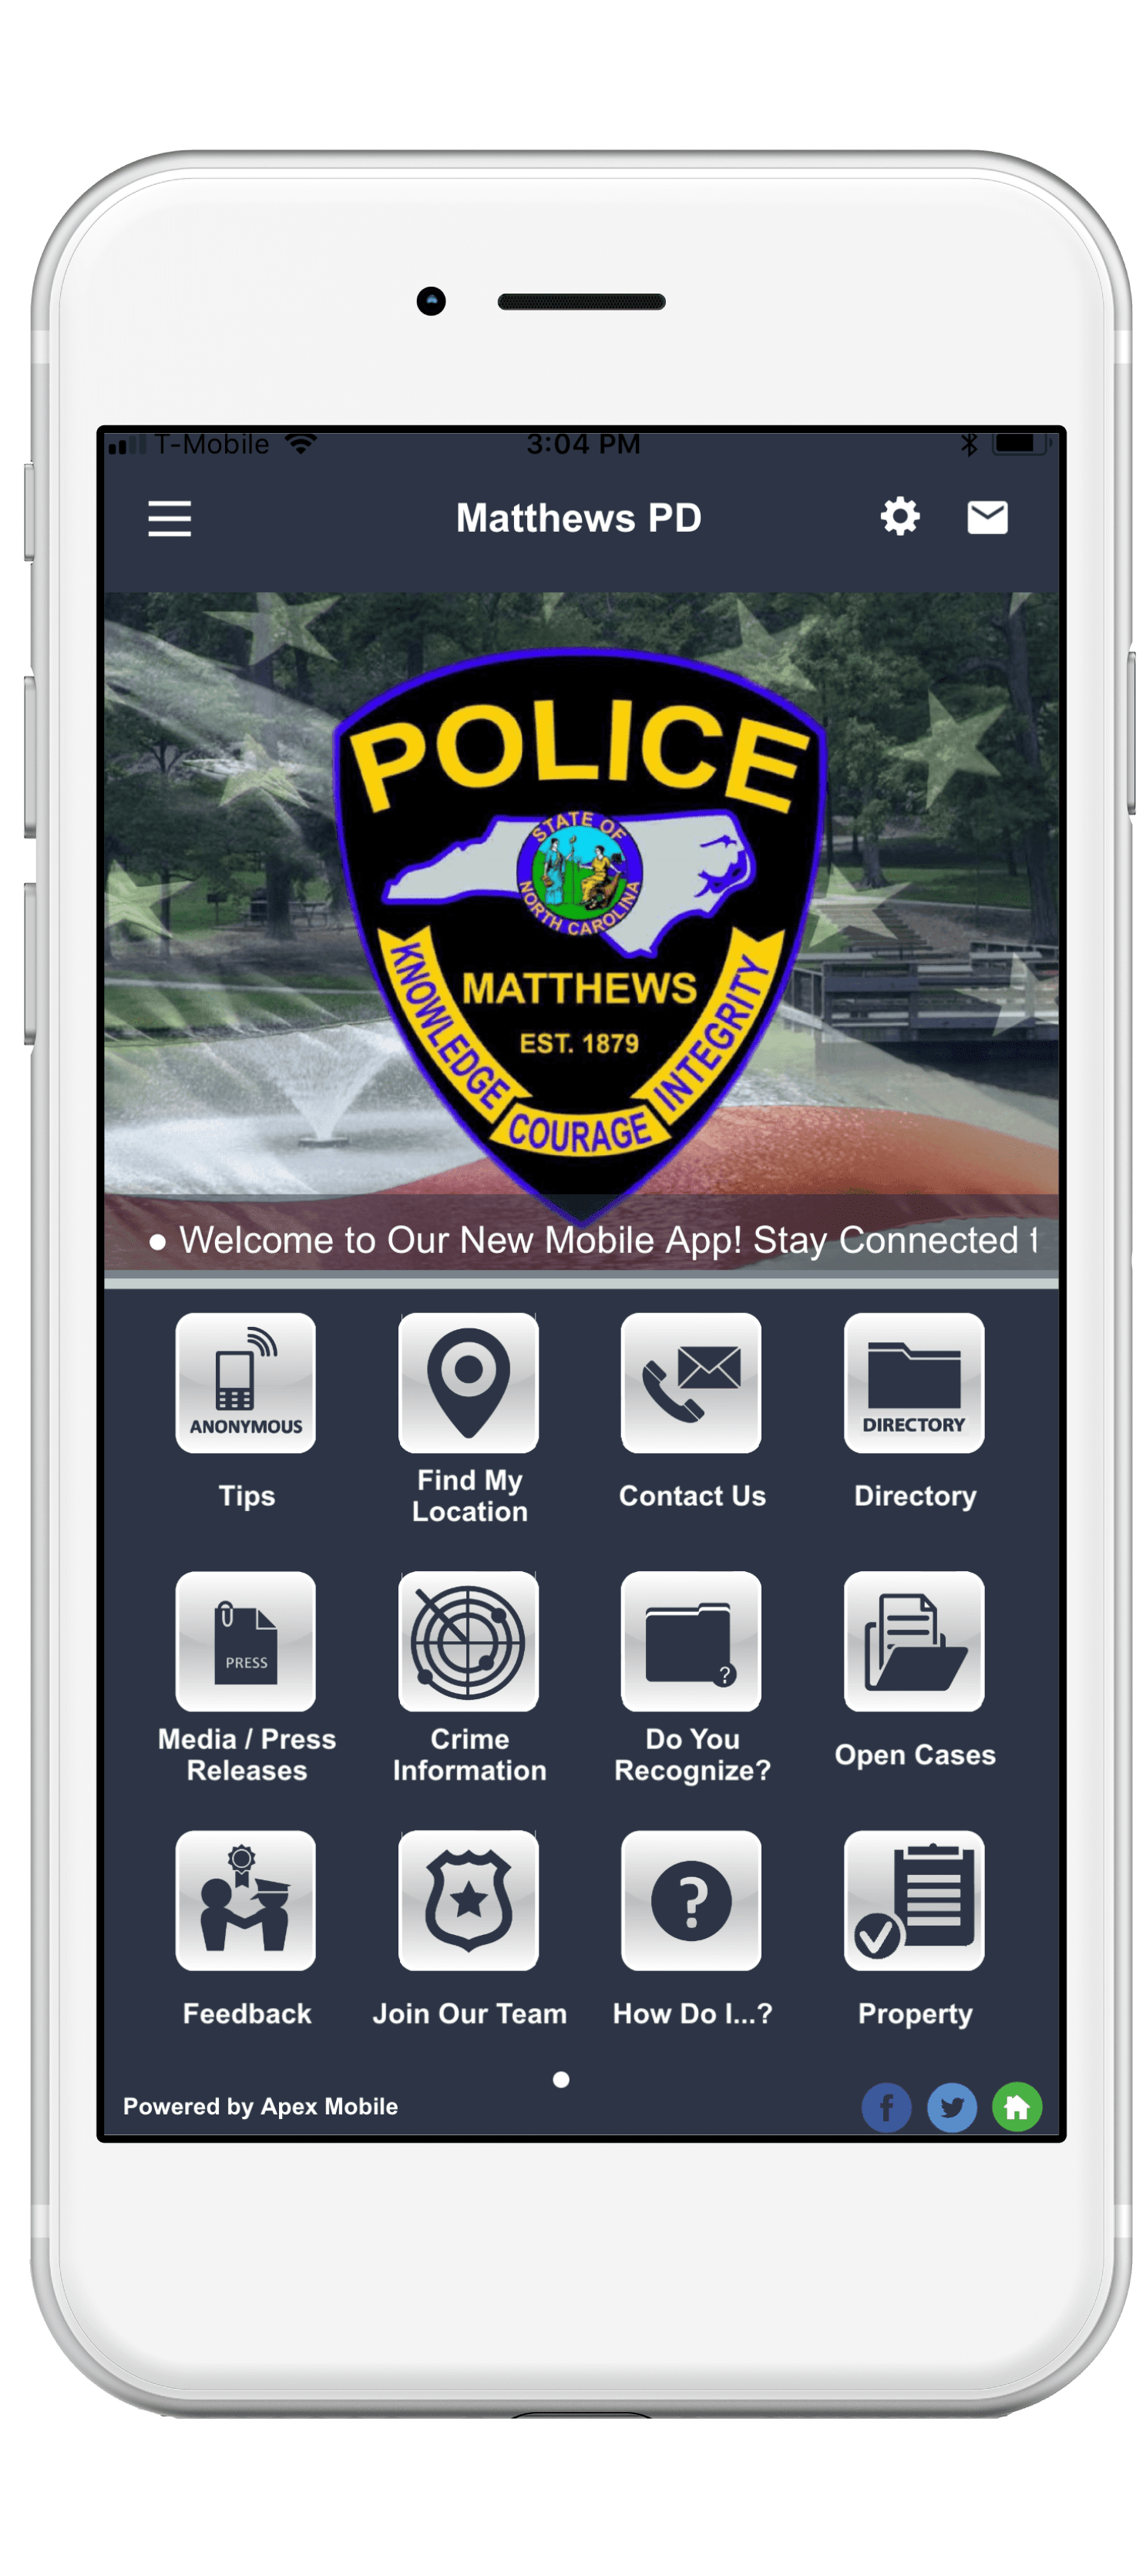 matthews police department mobile app screenshot-min